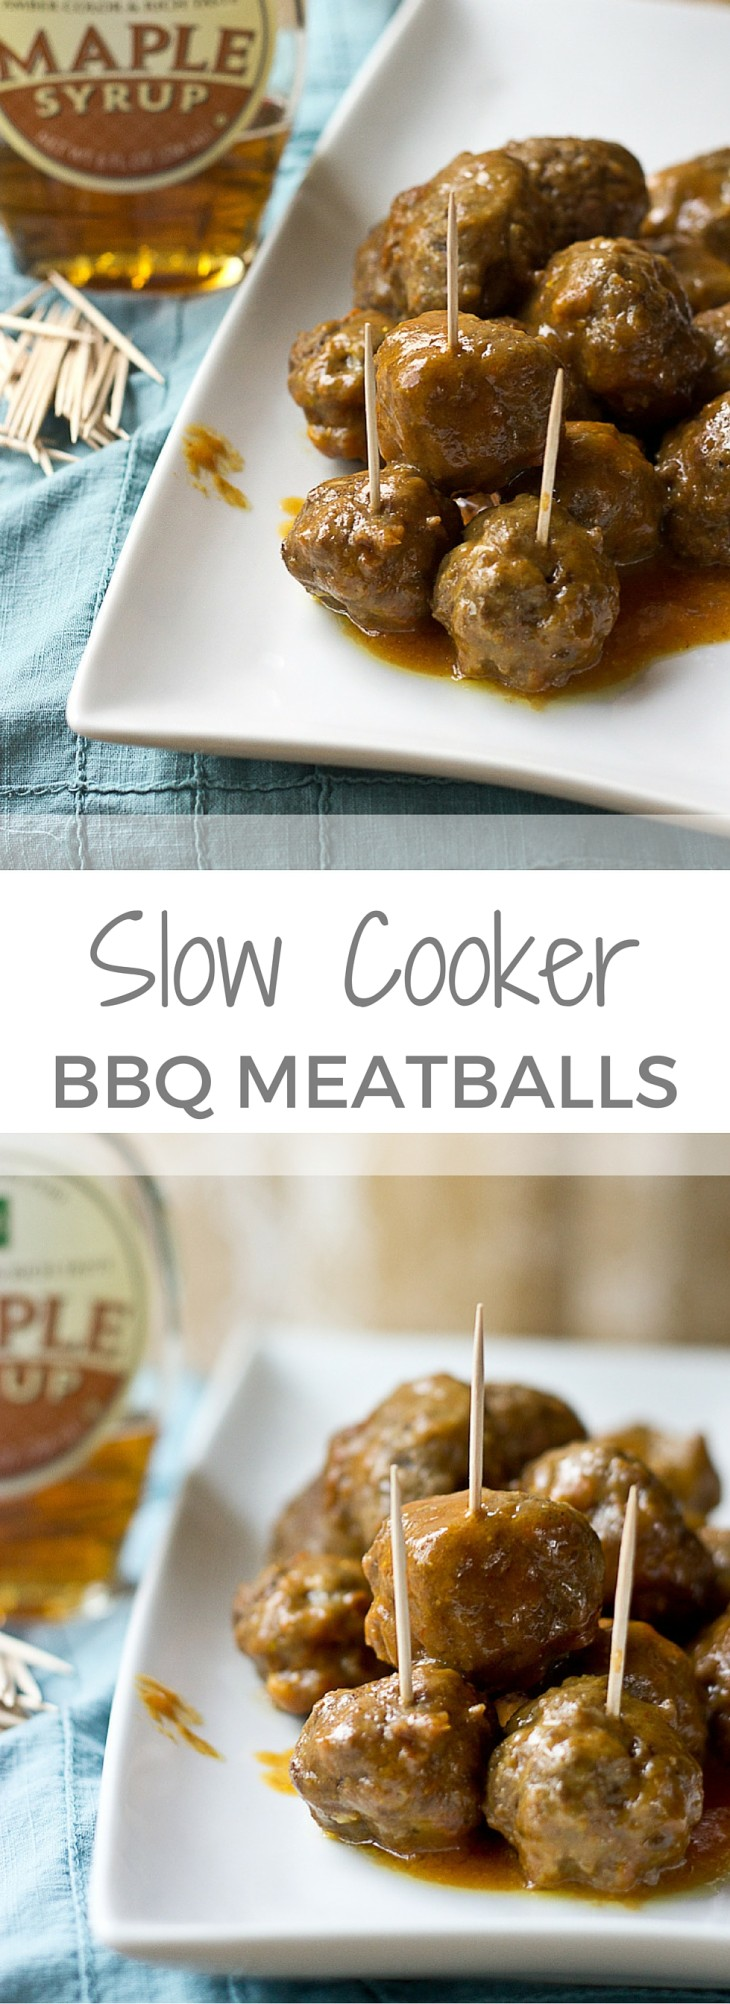 These Slow Cooker Maple Meatballs tho. Love that sweet maple flavor! Serve these up for a crowd at your next football party or meal prep them to eat throughout the week! The slow cooker does all the work.